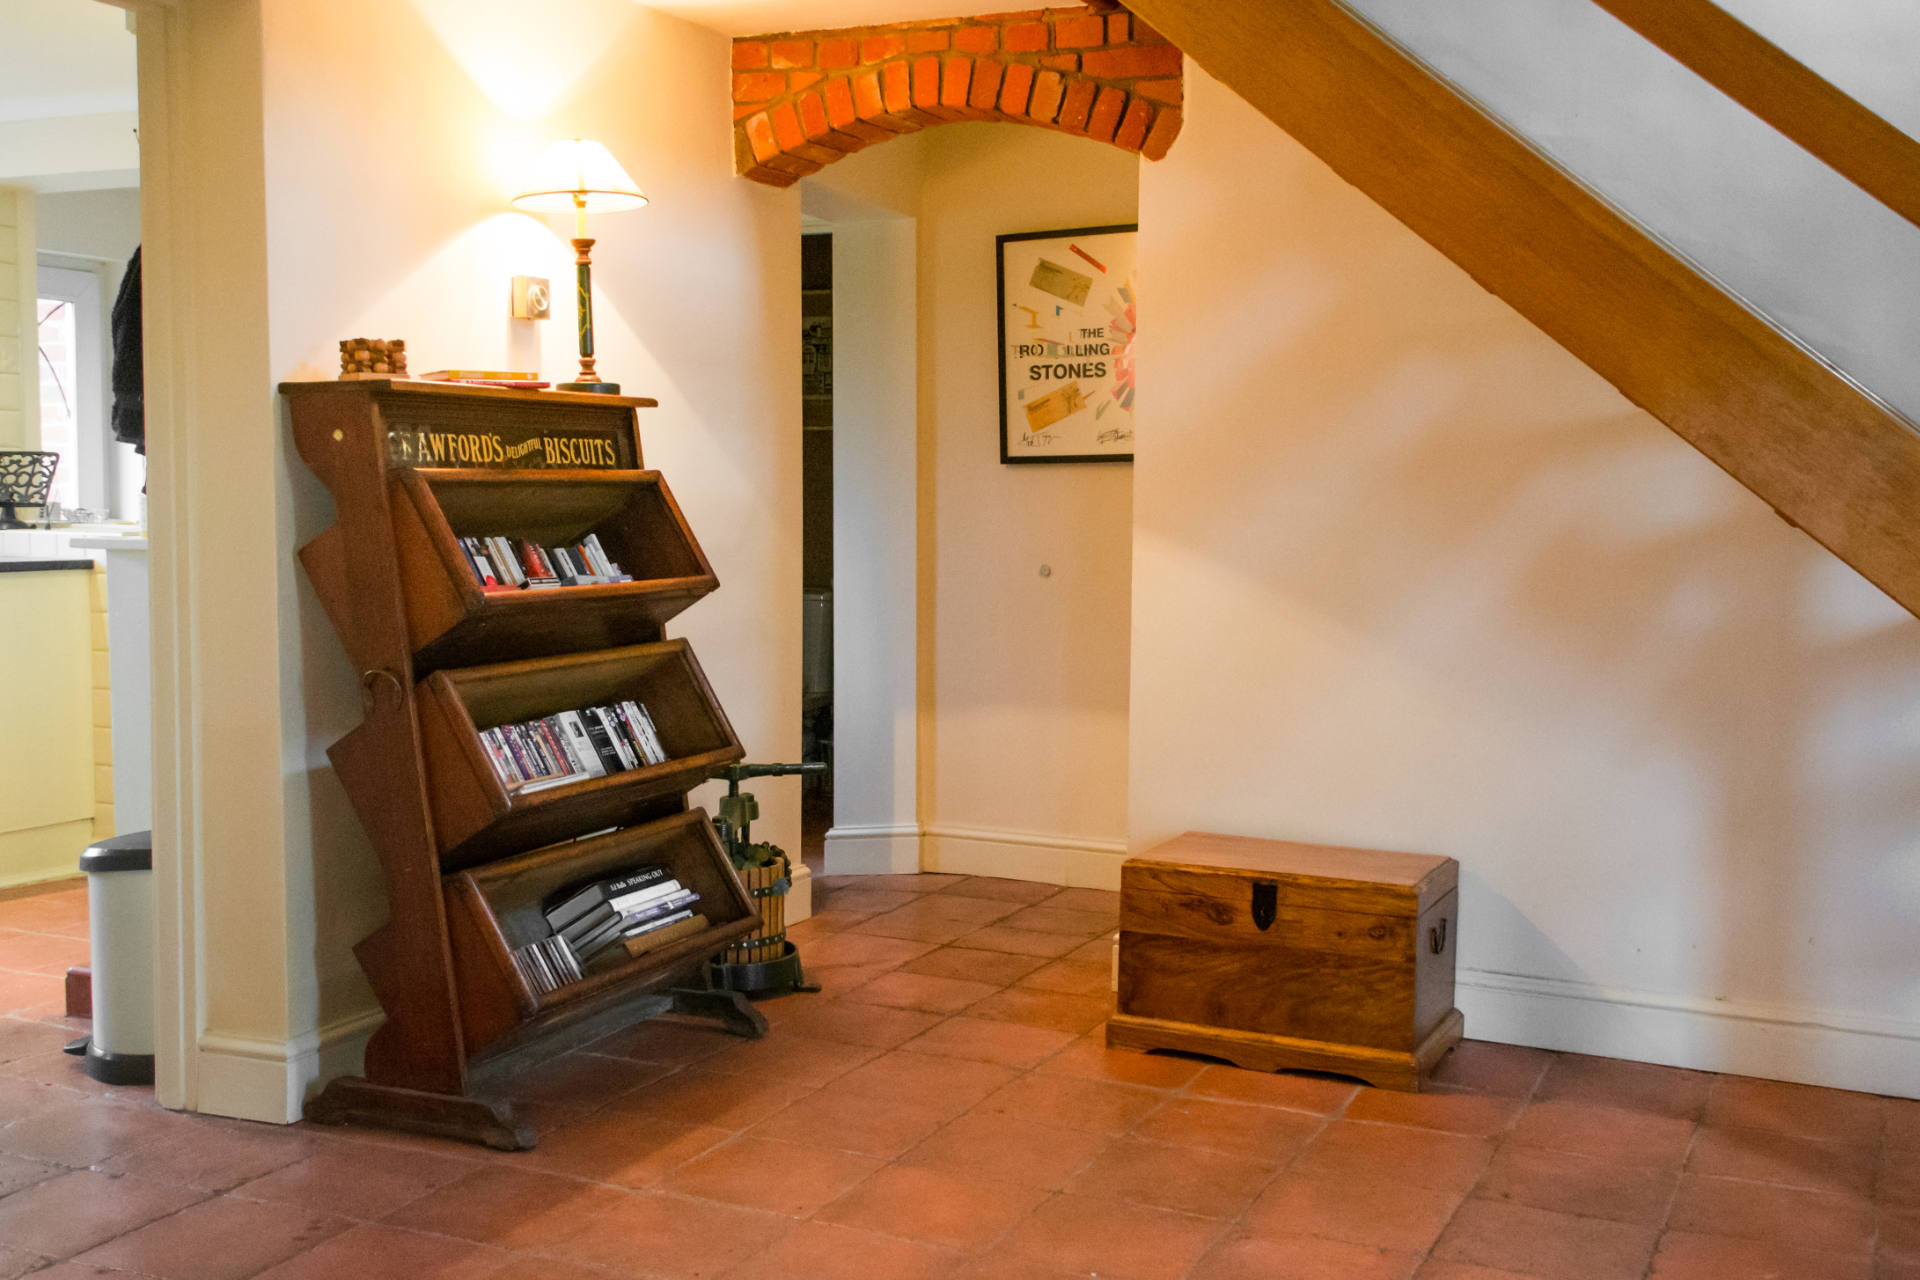 Bookcase under the stairs of Manor Lodge entrance.